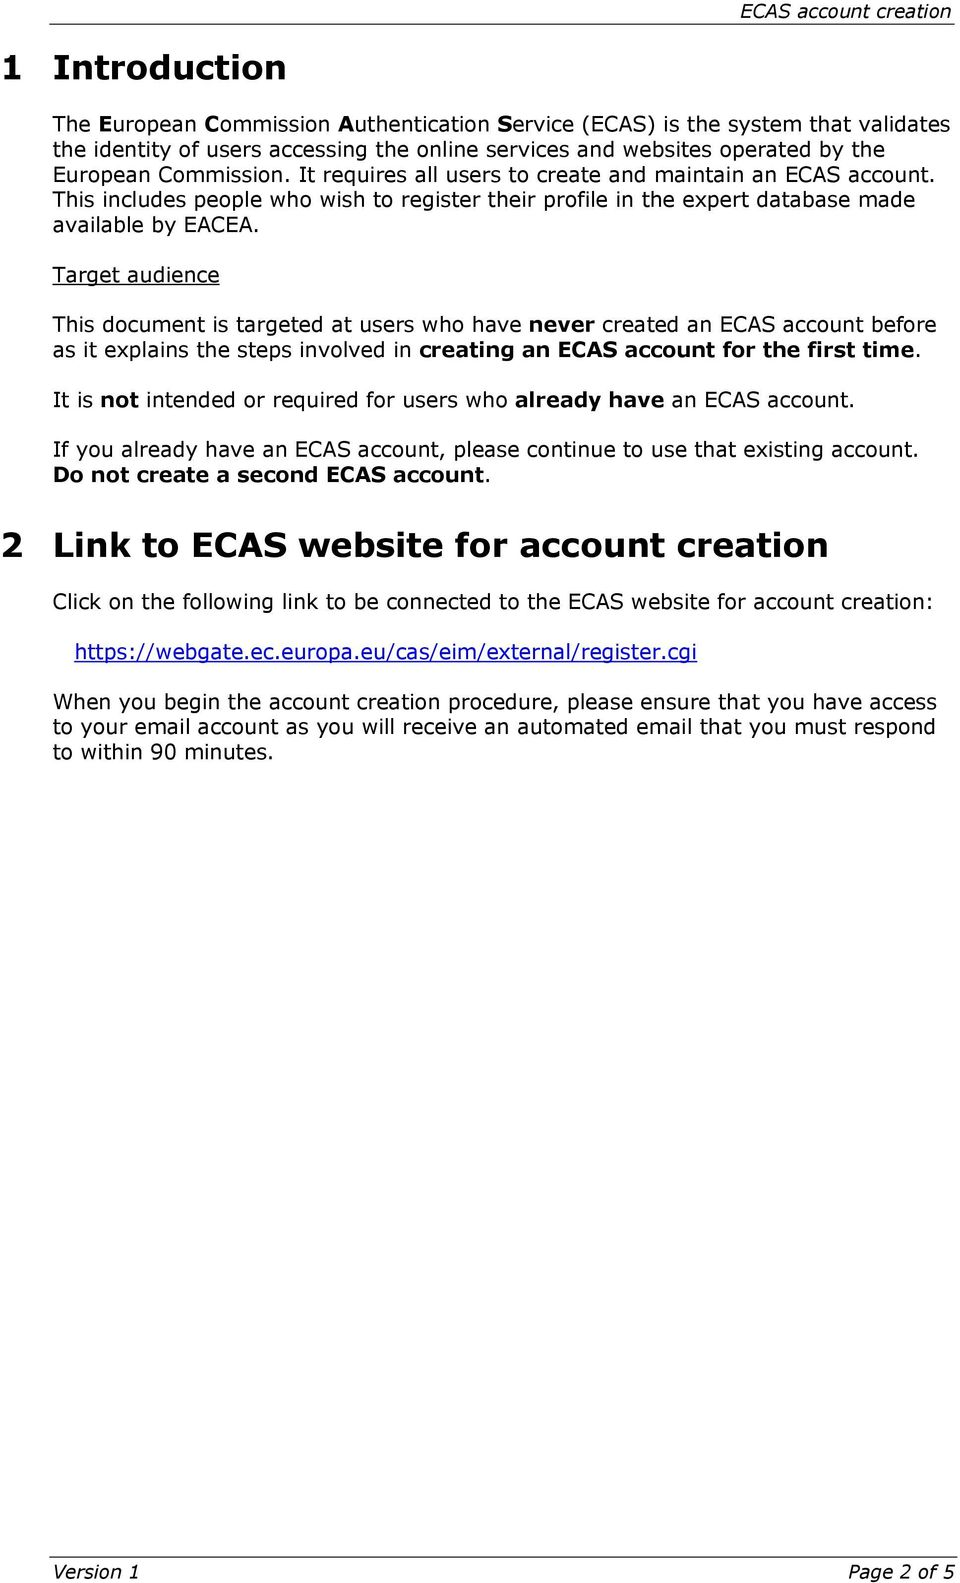 Target audience This document is targeted at users who have never created an ECAS account before as it explains the steps involved in creating an ECAS account for the first time.